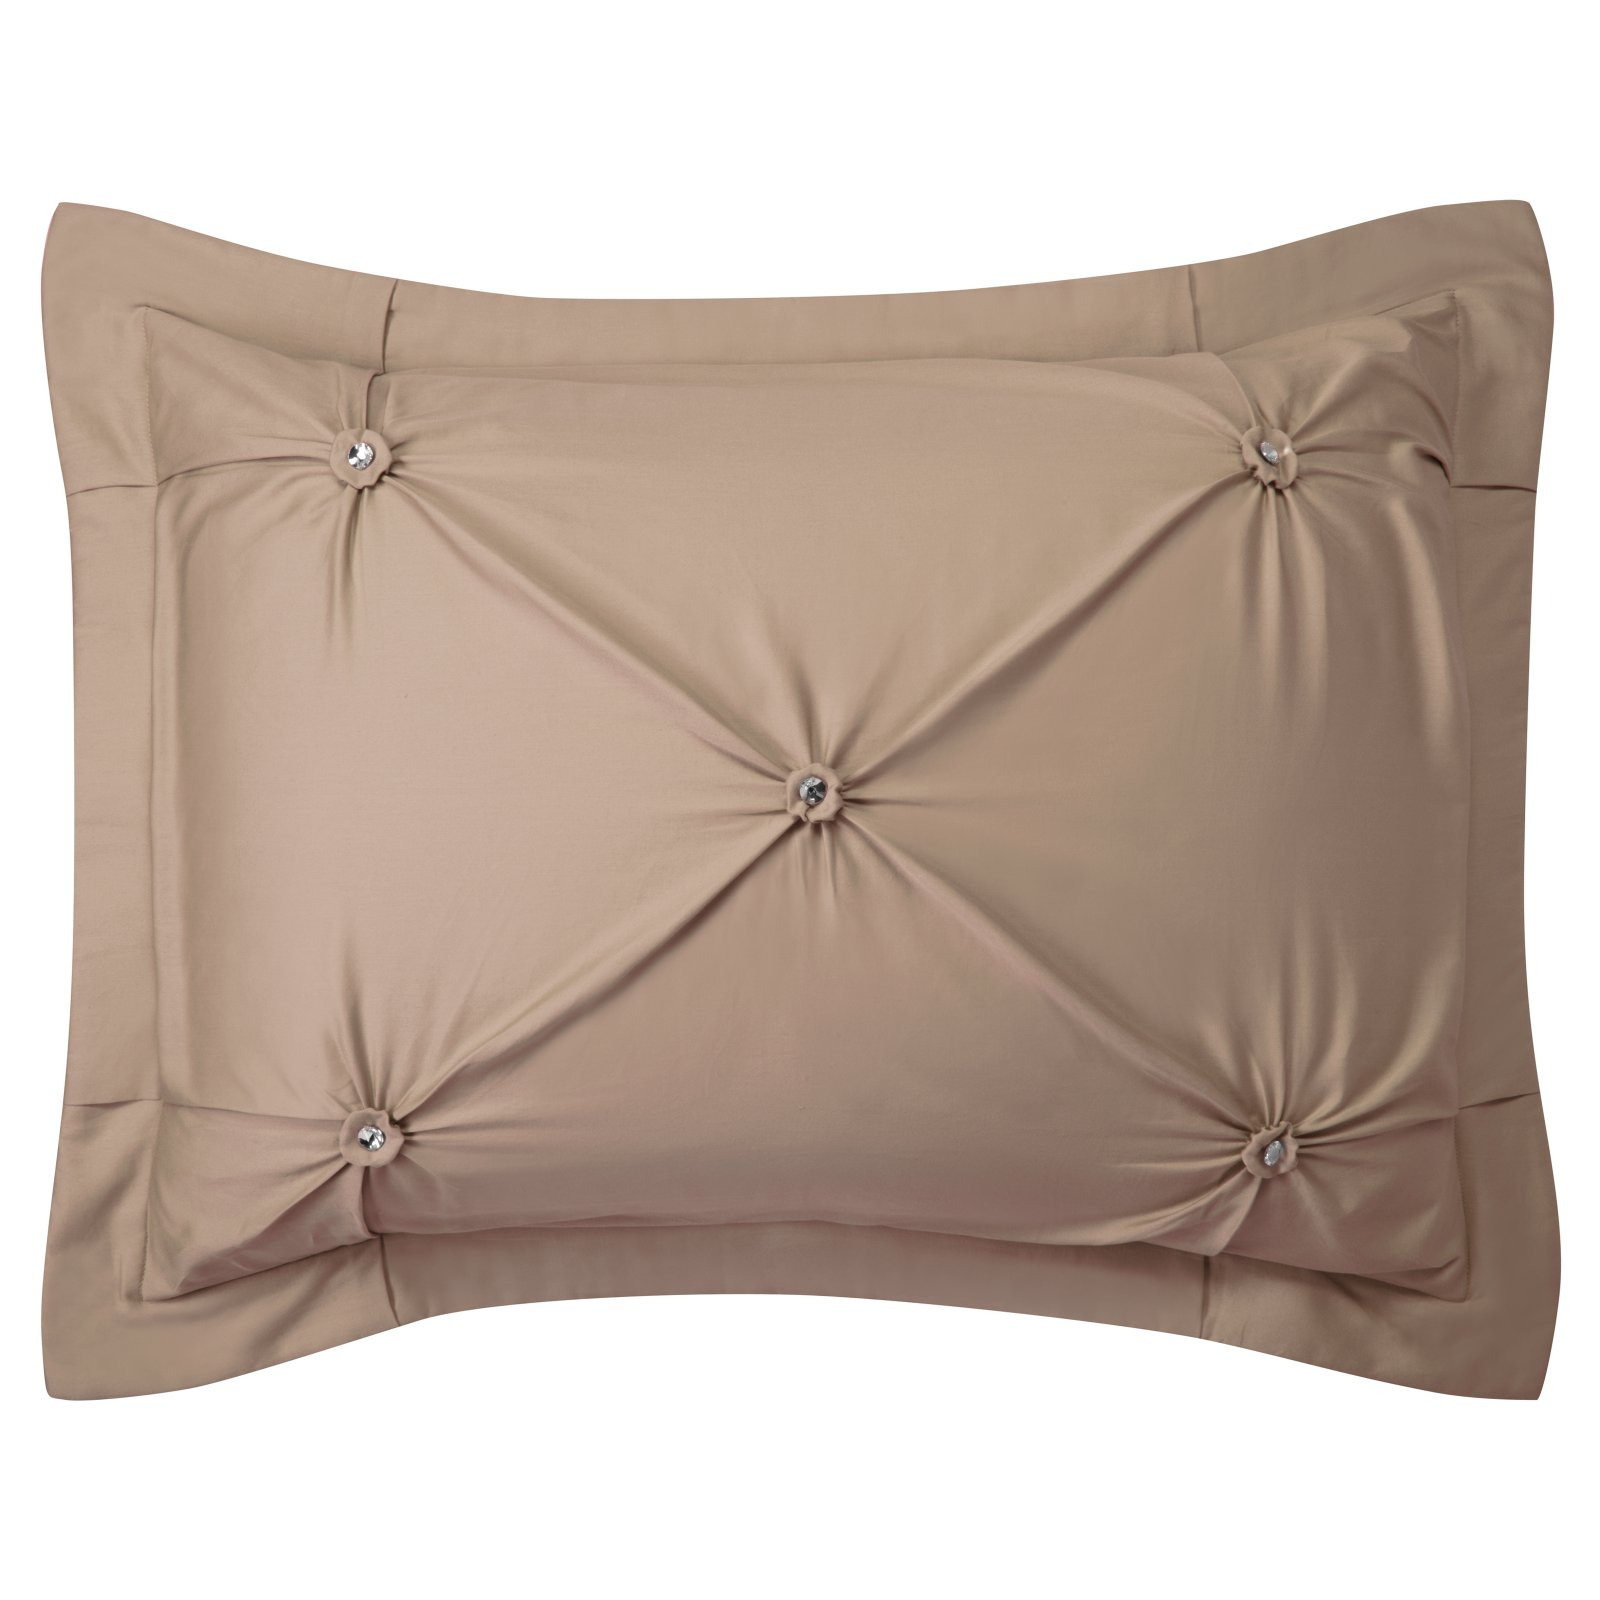 Textrade International Ltd Memento Swarovski Sham